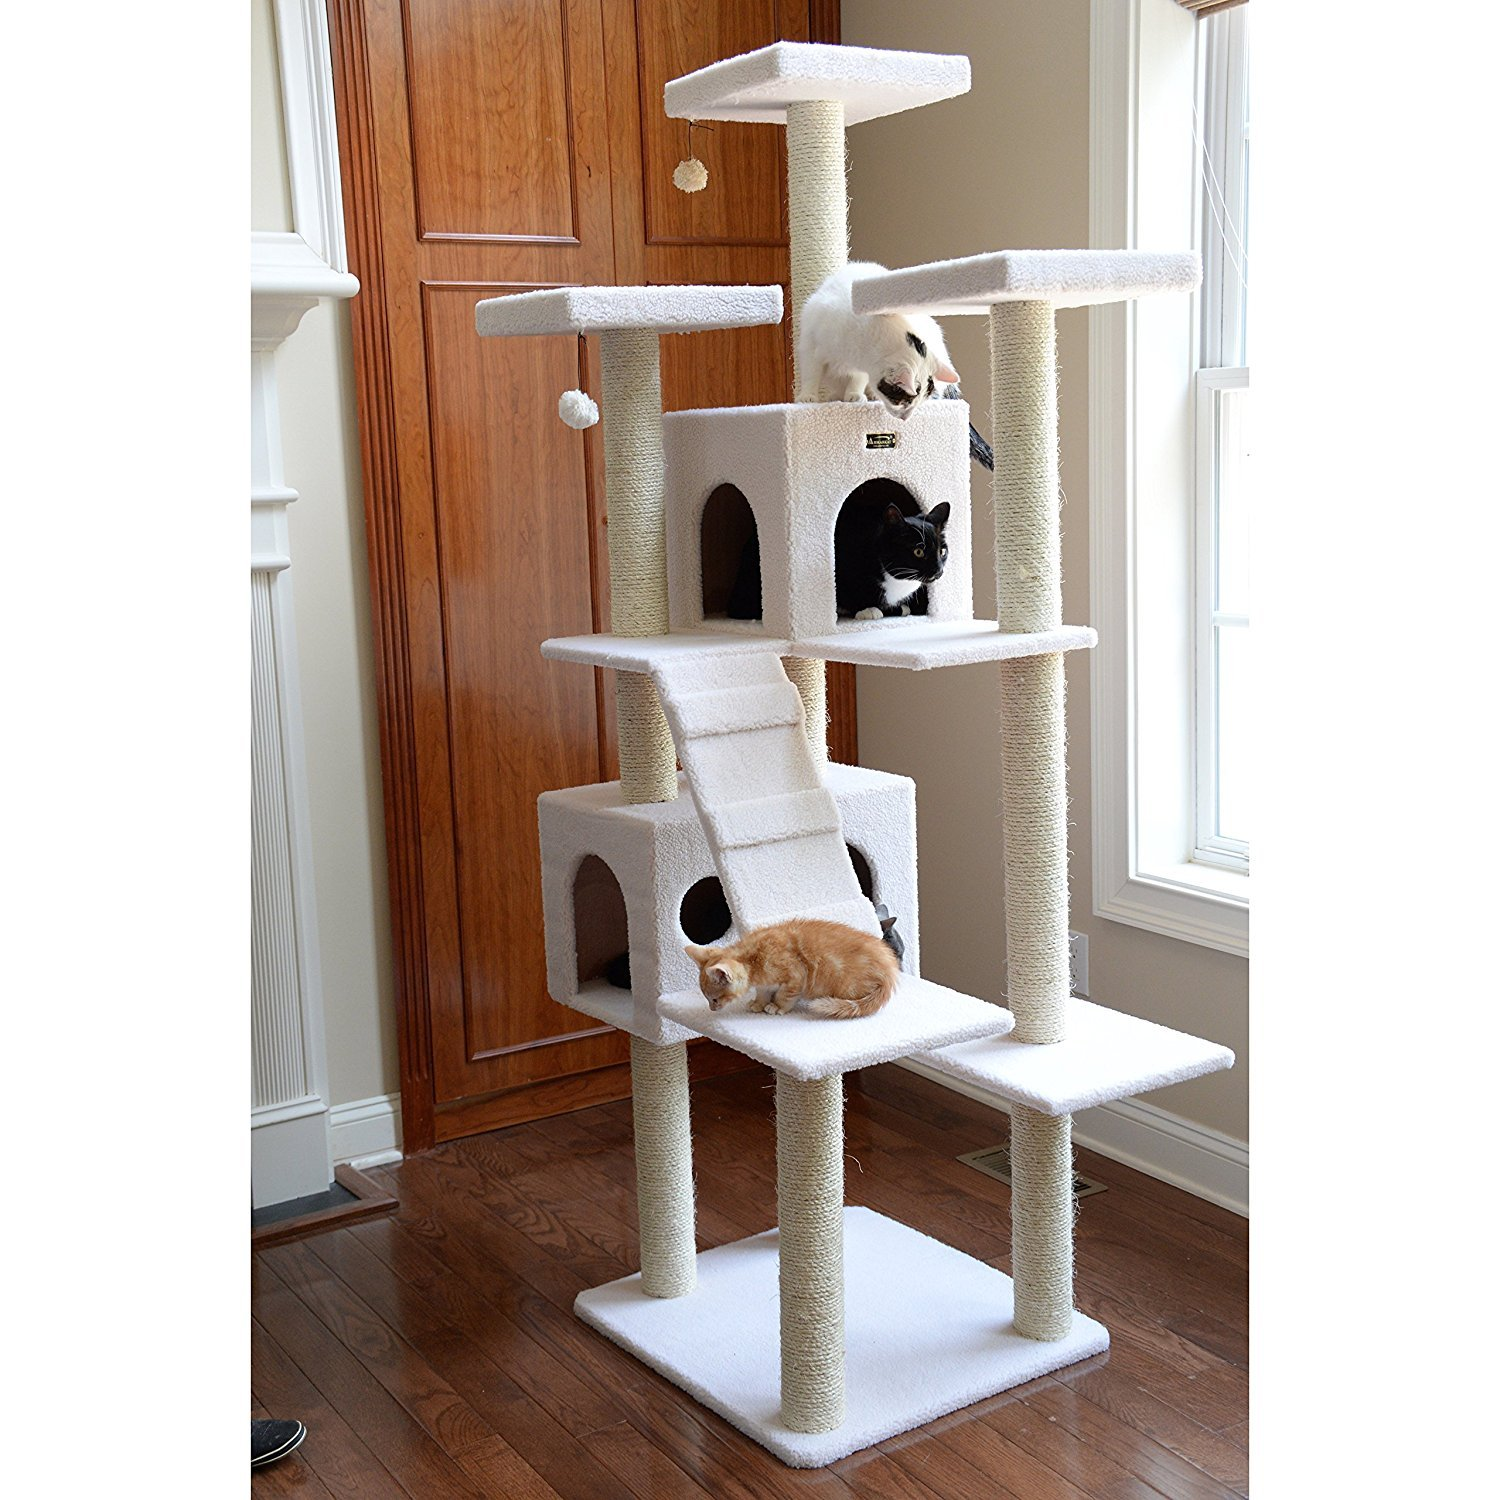 77'' Cat Tree Climbing Scratcher Covered with faux fleece posts are wrapped